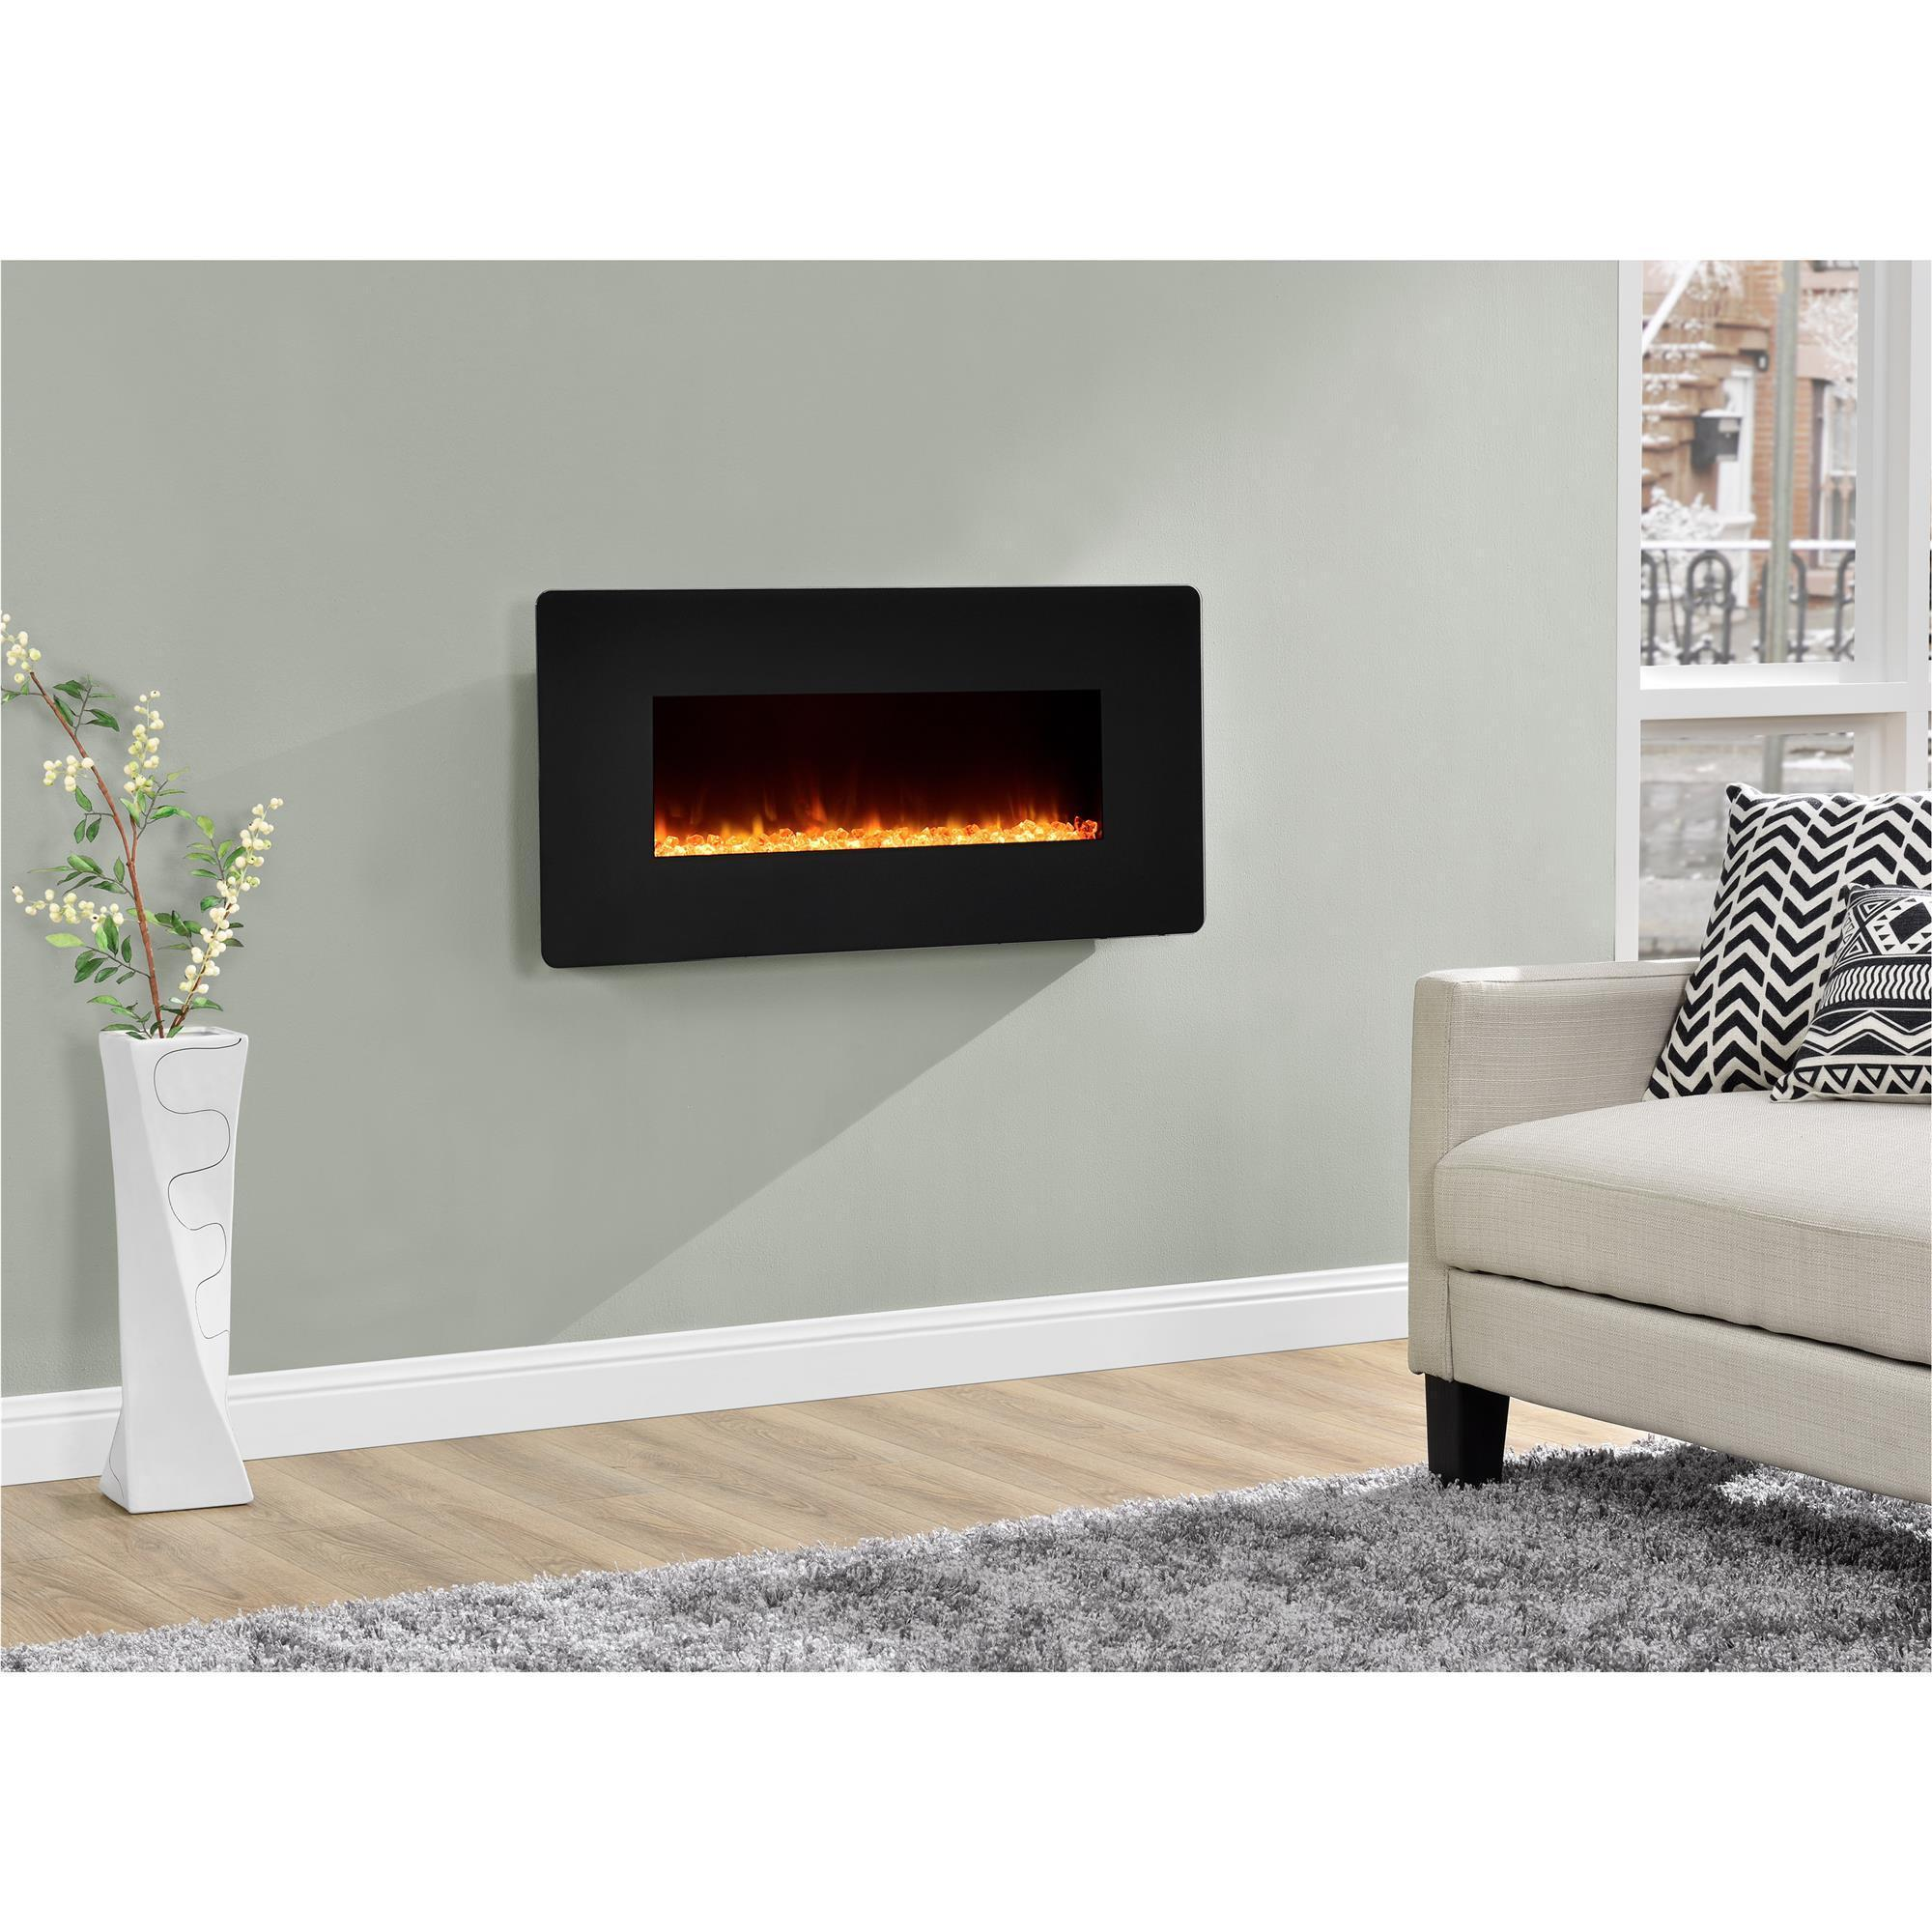 inch wall ameriwood altra shipping mount fireplace today home black free mounted product garden kenna overstock